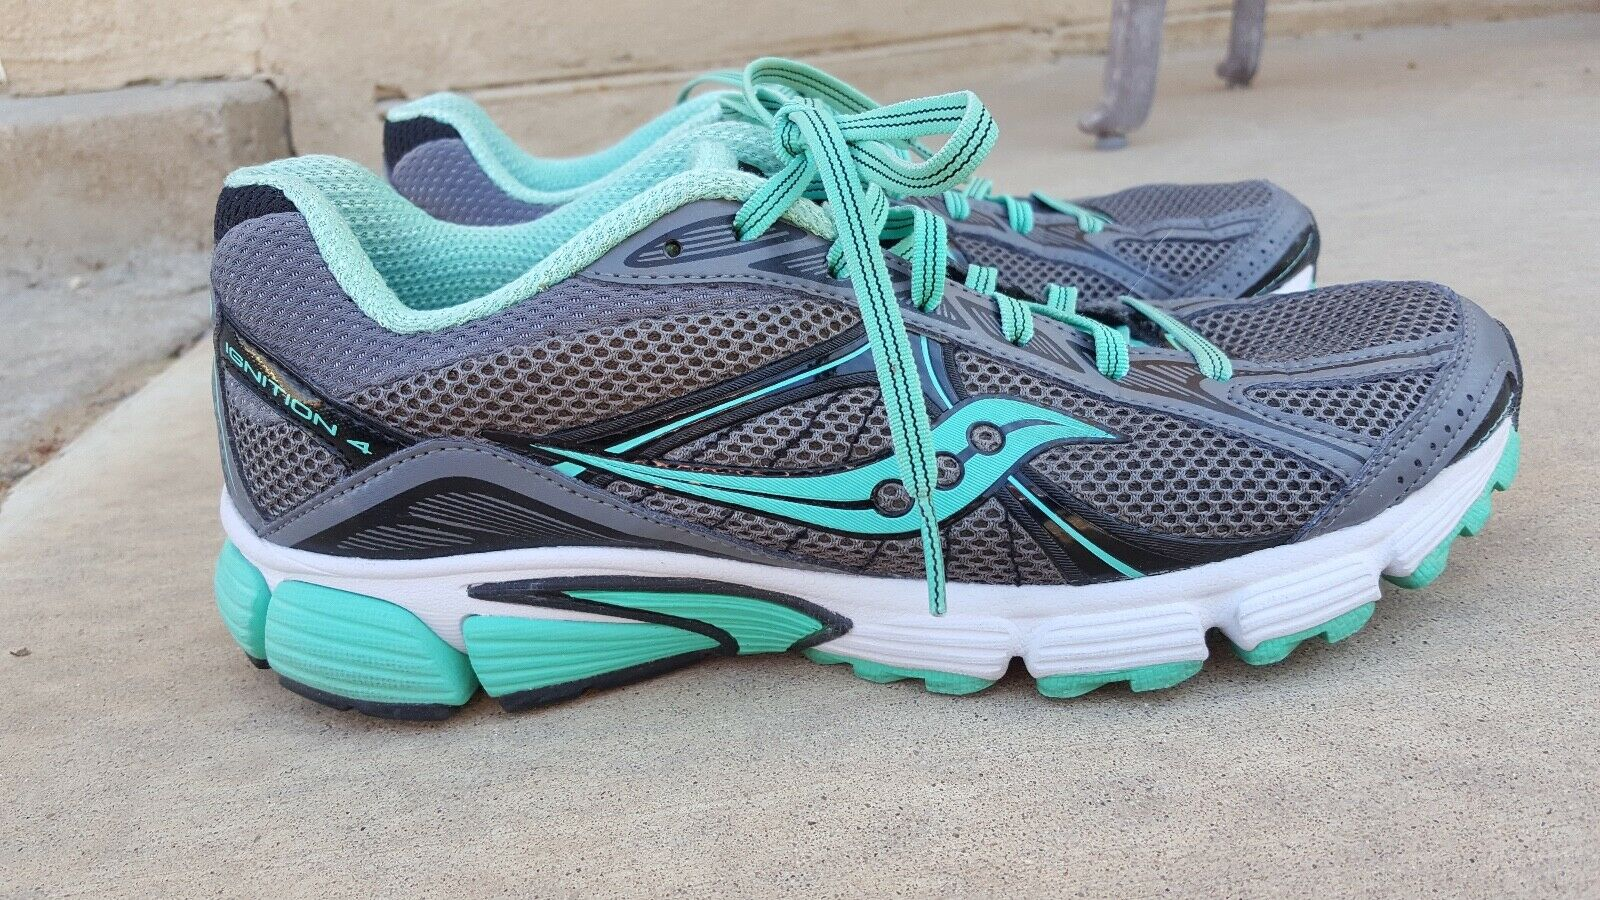 Saucony Ignition 4 shoes for Women